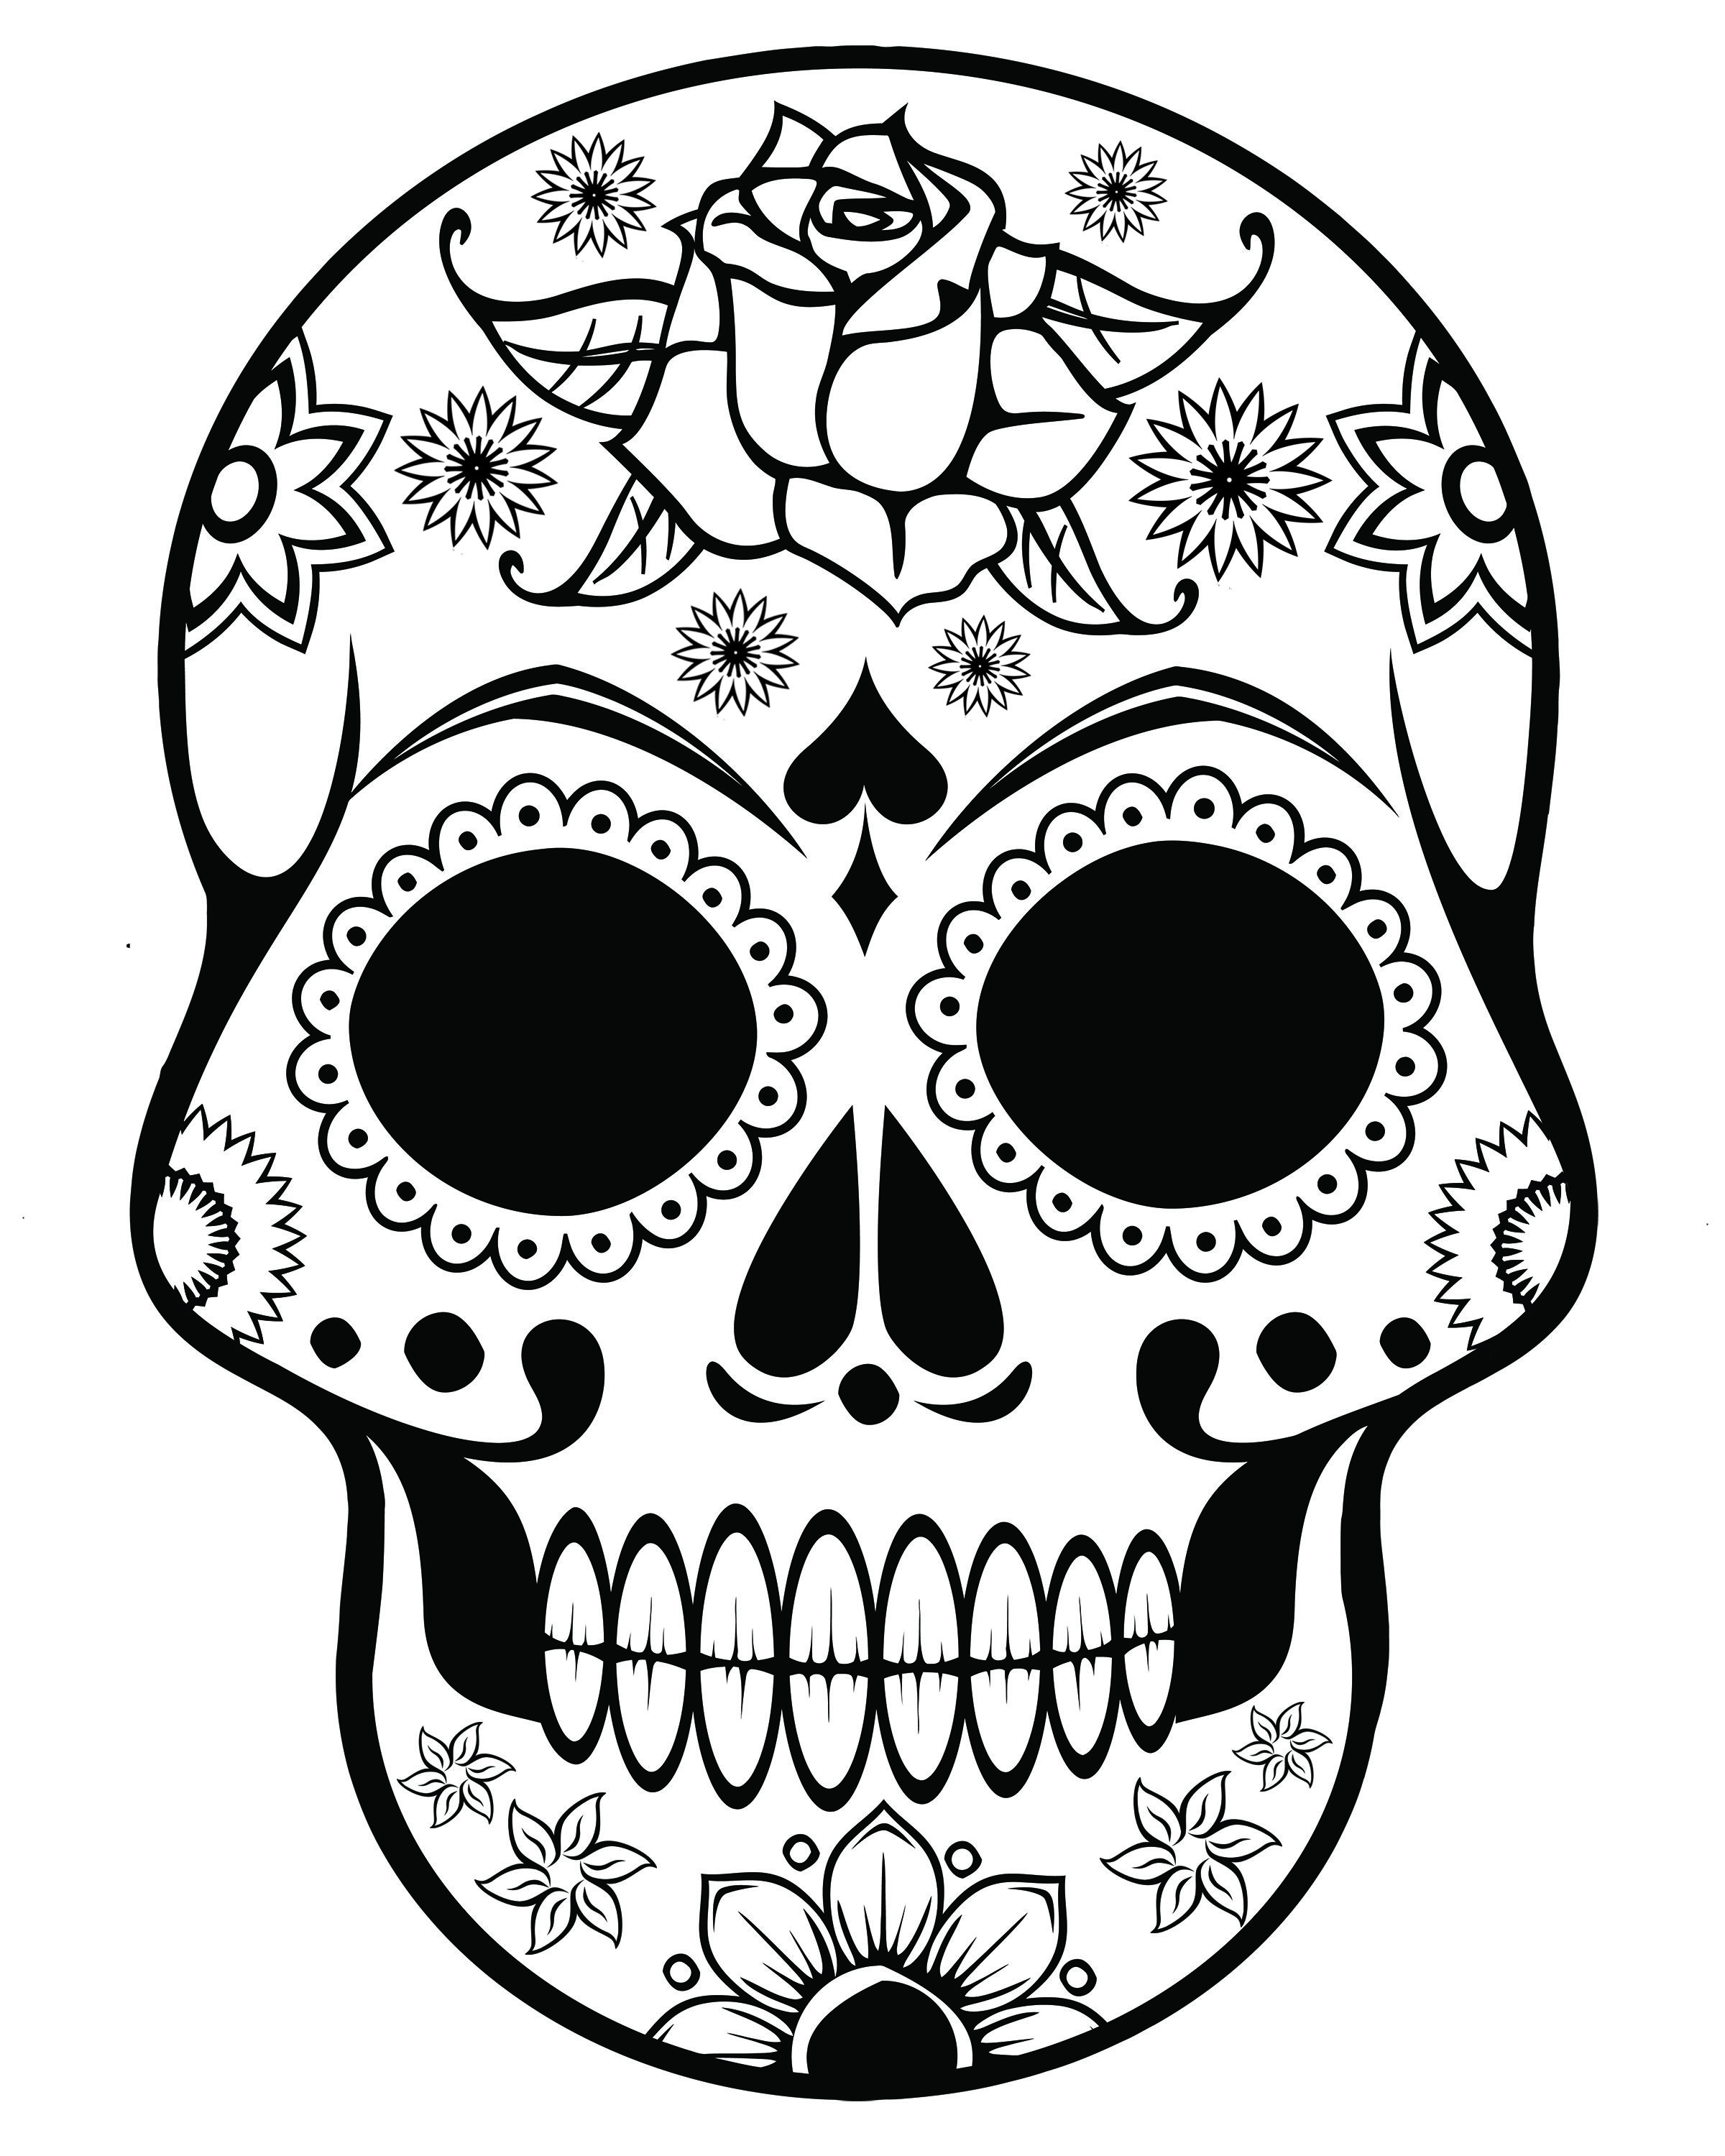 FREE Printable Halloween Coloring Pages for Adults - Sugar Skull ...